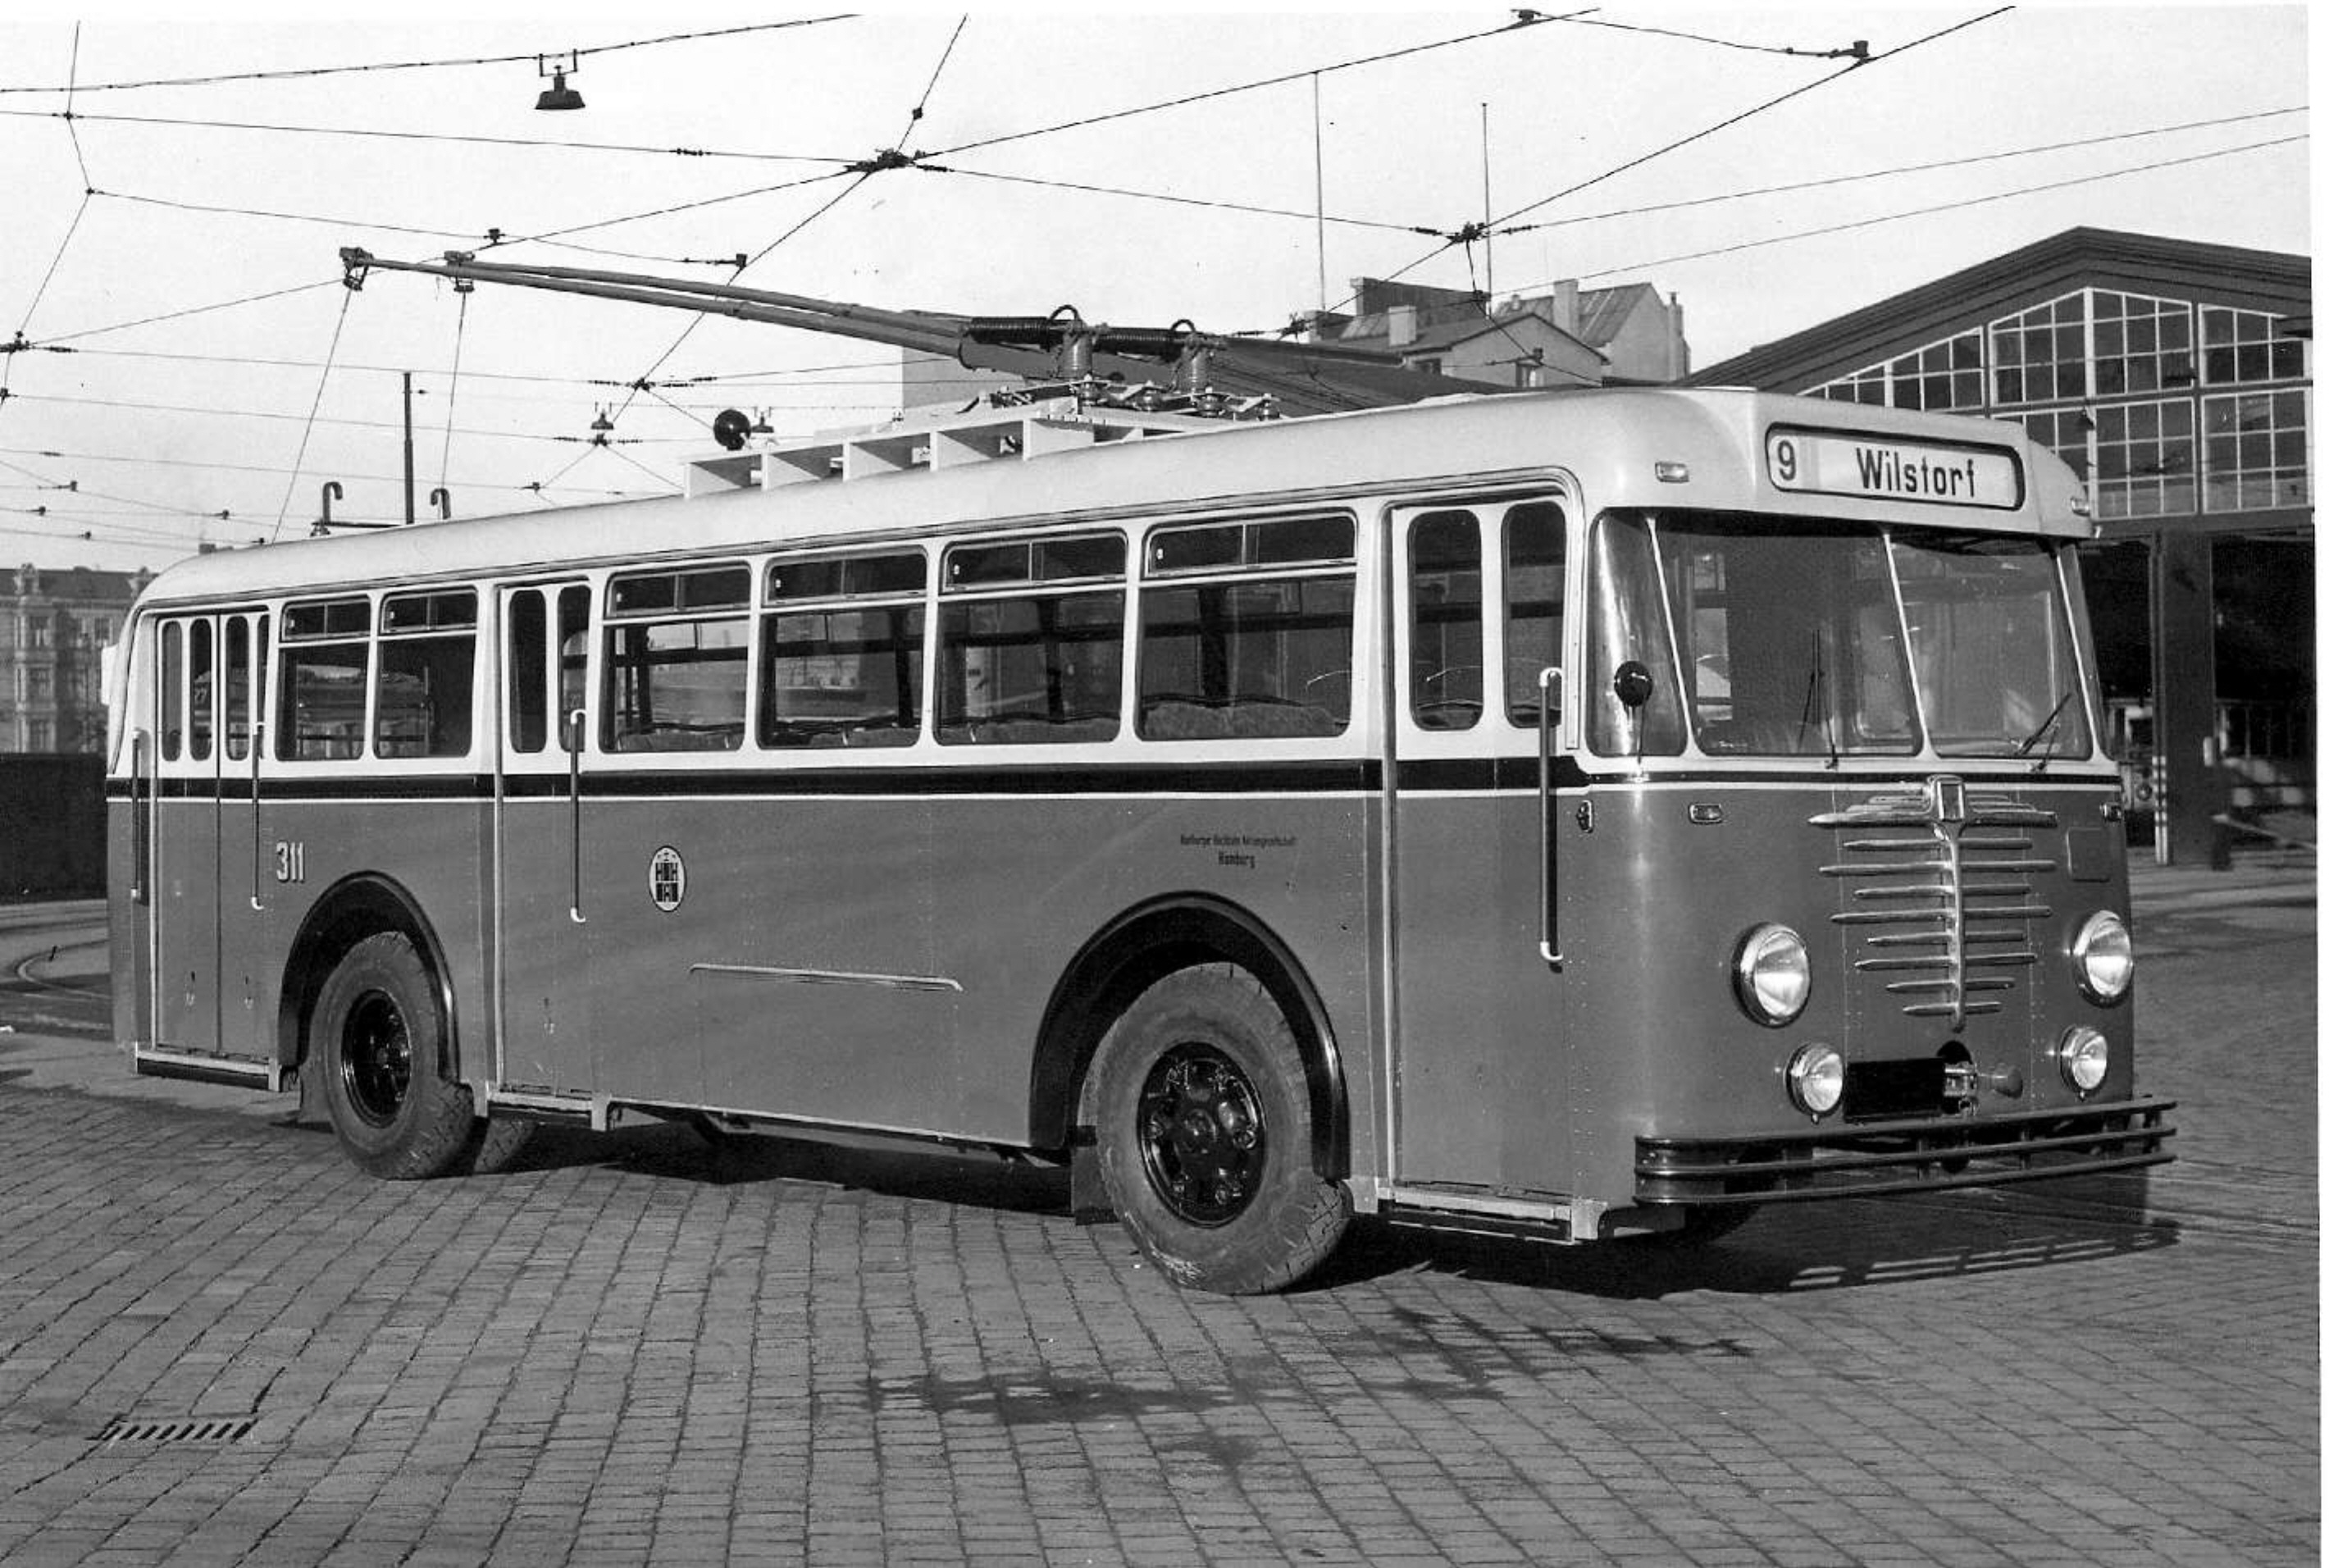 file wilstorf 1952 harburg o bus o 2 wikimedia commons. Black Bedroom Furniture Sets. Home Design Ideas